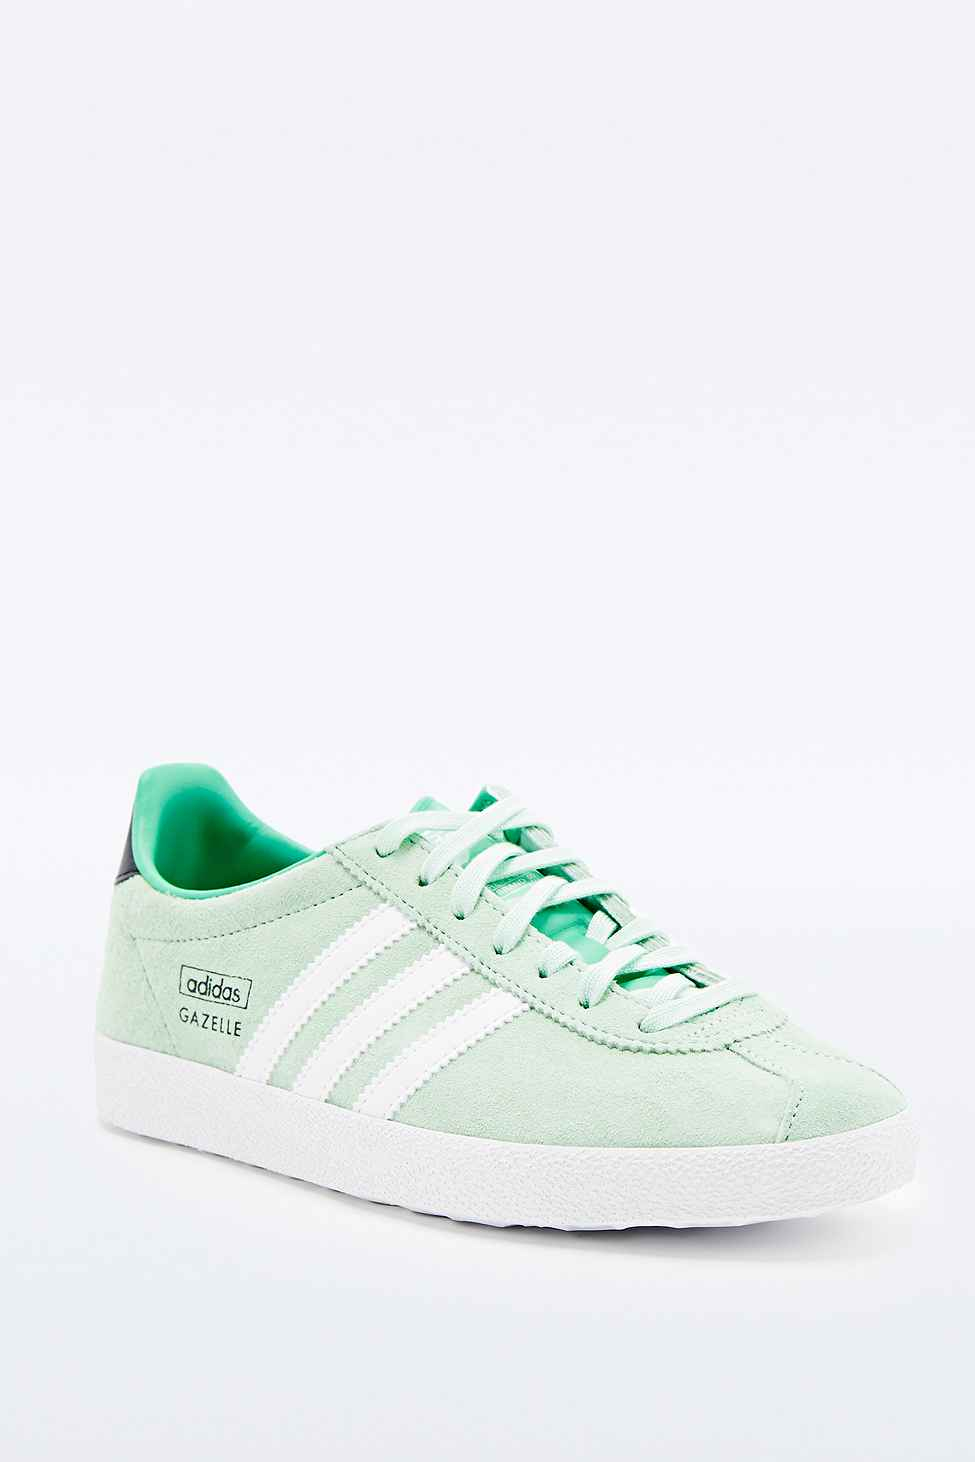 acf34ccaa286 adidas Gazelle Trainers In Mint in Green - Lyst